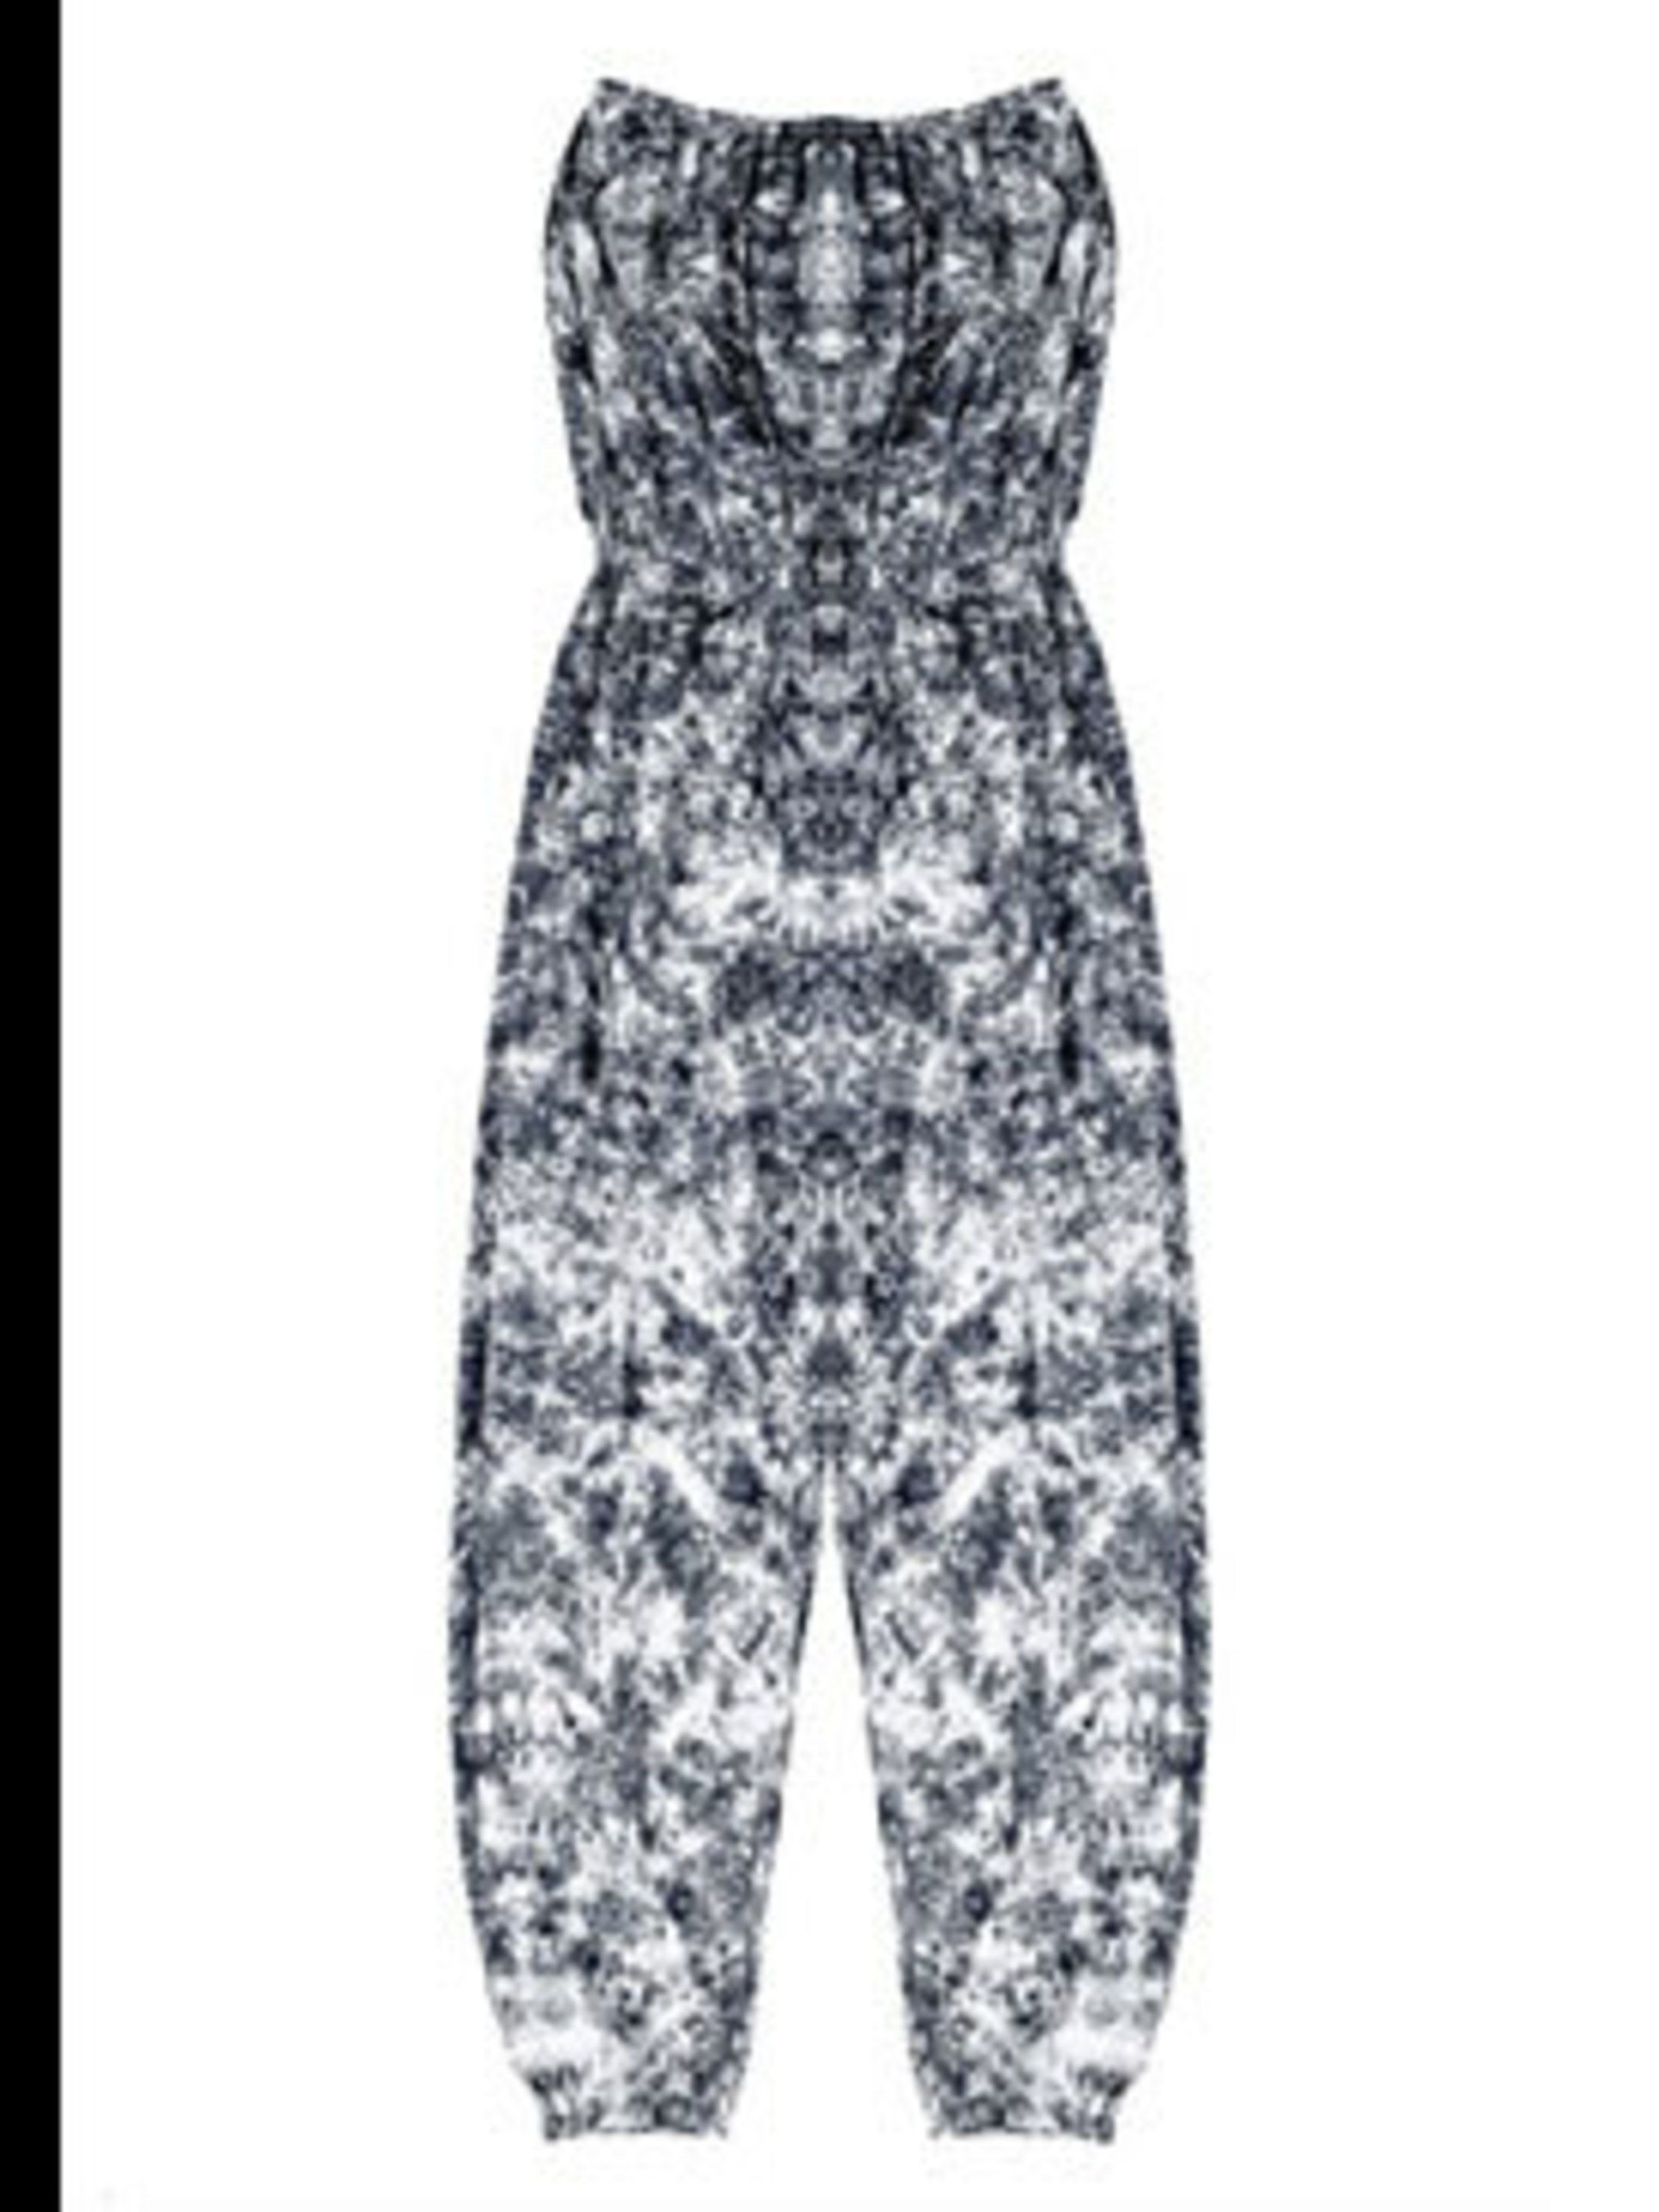 """<p>Jumpsuit £105 by Maurie&Eve at <a href=""""http://www.bunnyhug.co.uk/fashionshop/gbu0-prodshow/Maurie_and_Eve_Strapless_Jumpsuit_in_Black_Smoke.html"""">Bunnyhug</a></p>"""